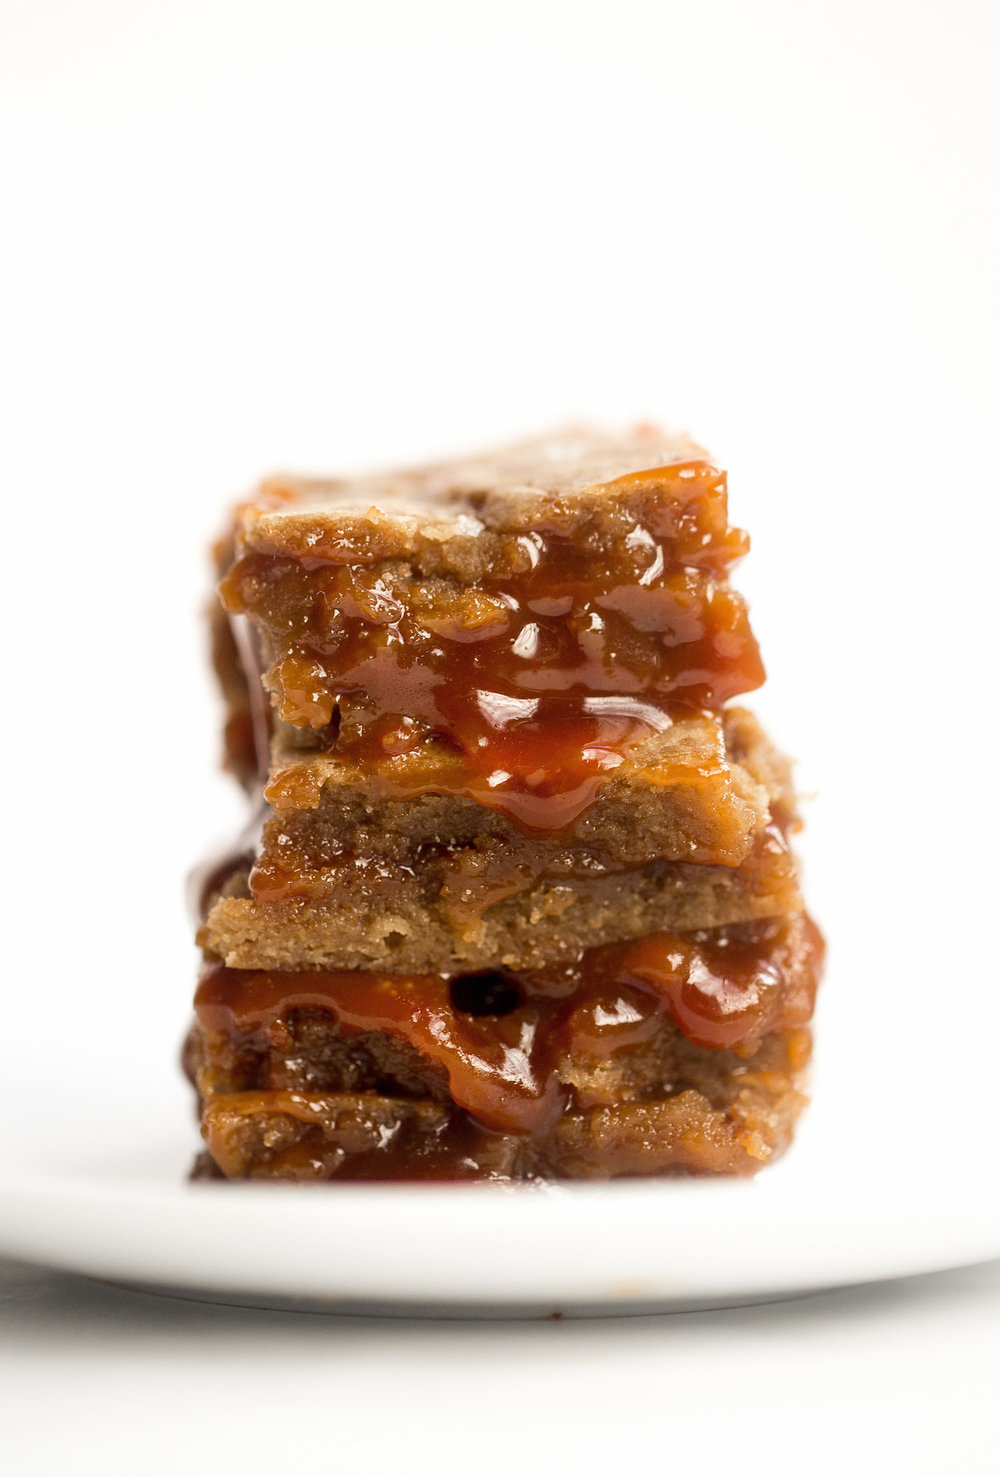 Salted Caramel Brown Butter Blondies: soft, gooey, caramelized blondies oozing with rich salted caramel. Dangerously good! | TrufflesandTrends.com